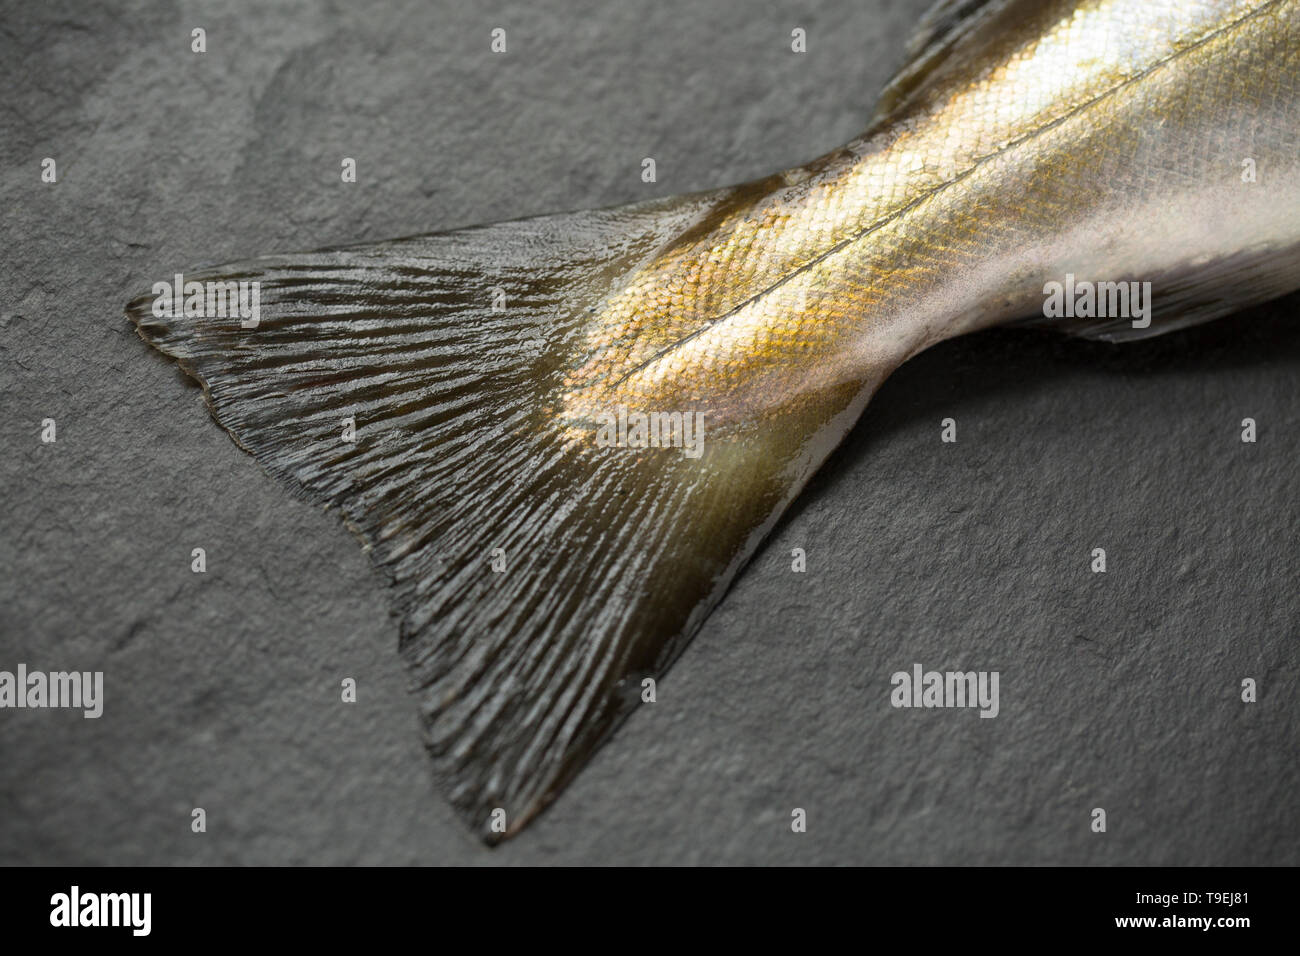 The tail fin, or caudal fin and scale pattern, of a raw, uncooked Pollack, Pollachius pollachius, that was caught on rod and line boat fishing in th E Stock Photo